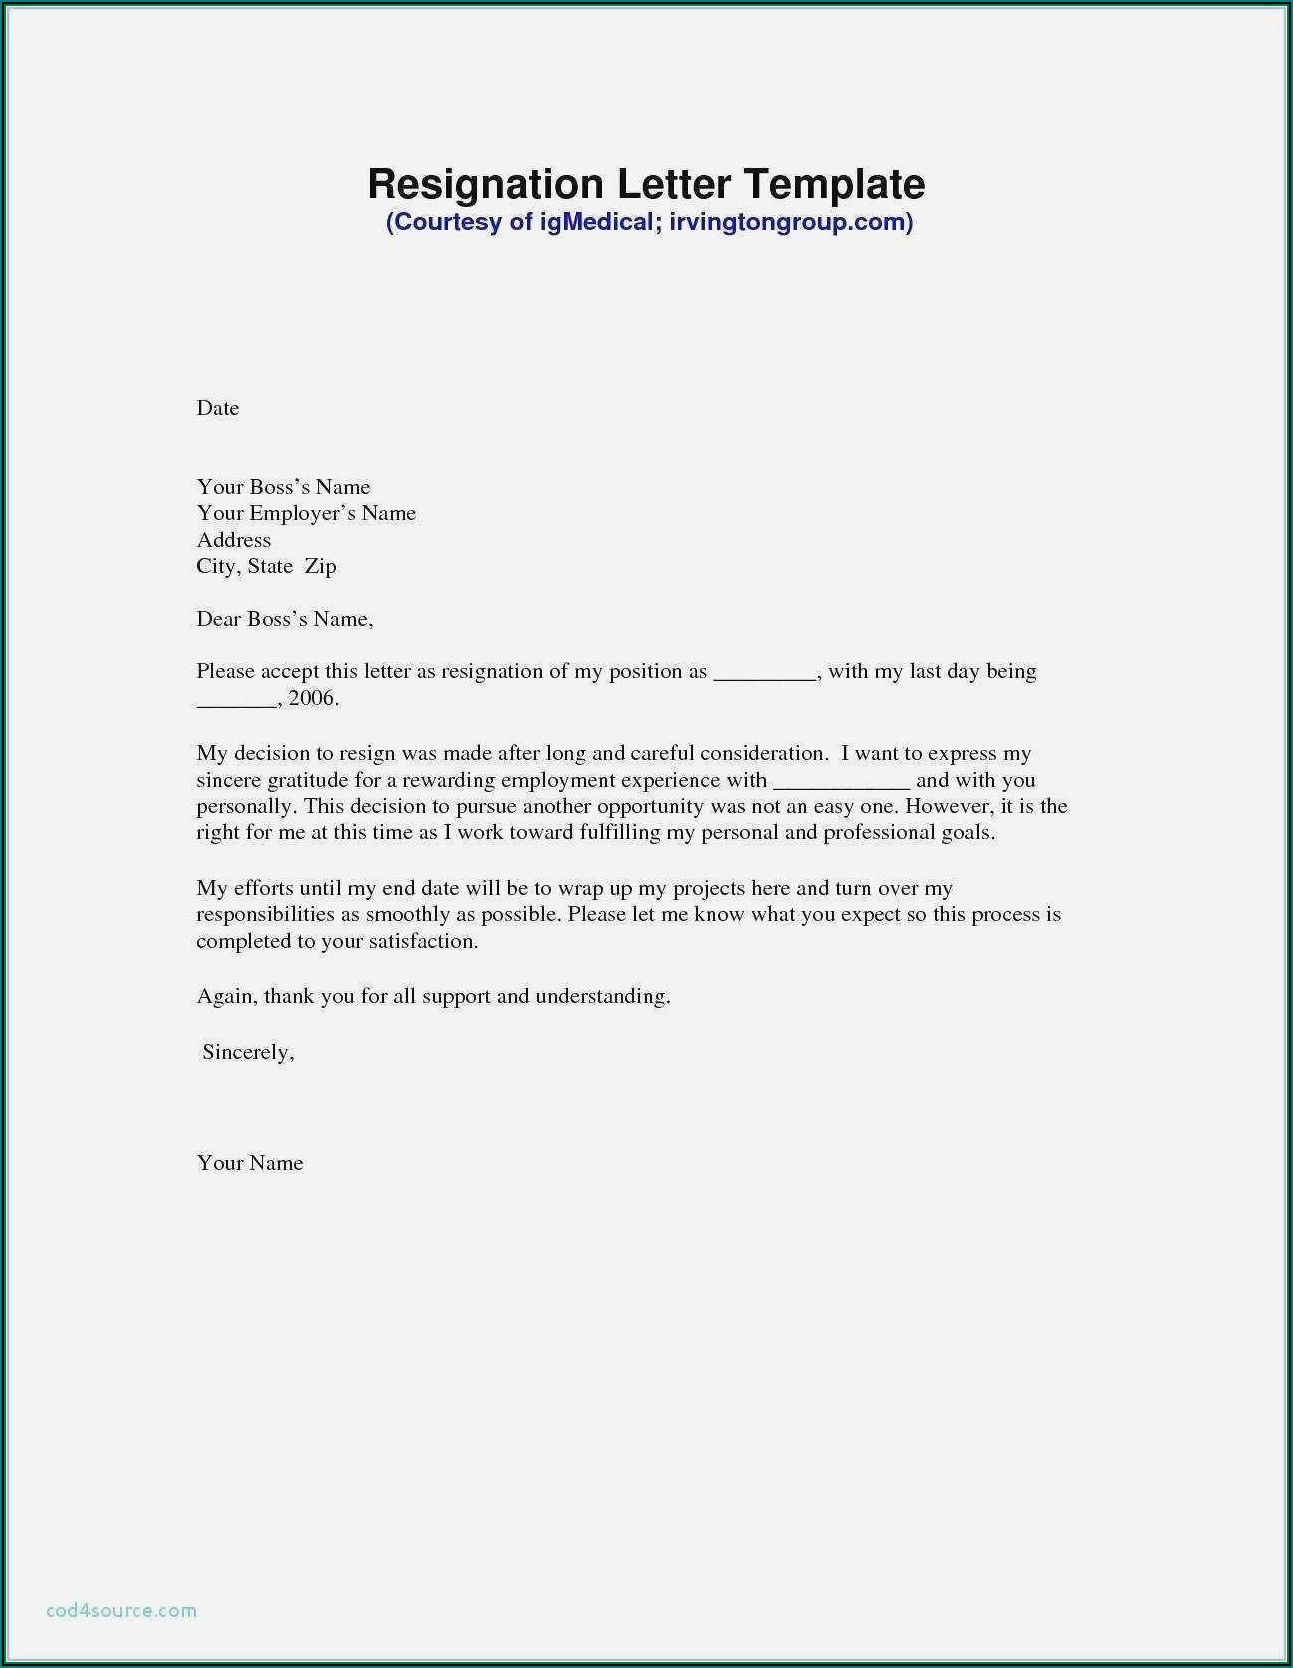 Free Downloadable Resignation Letter Template